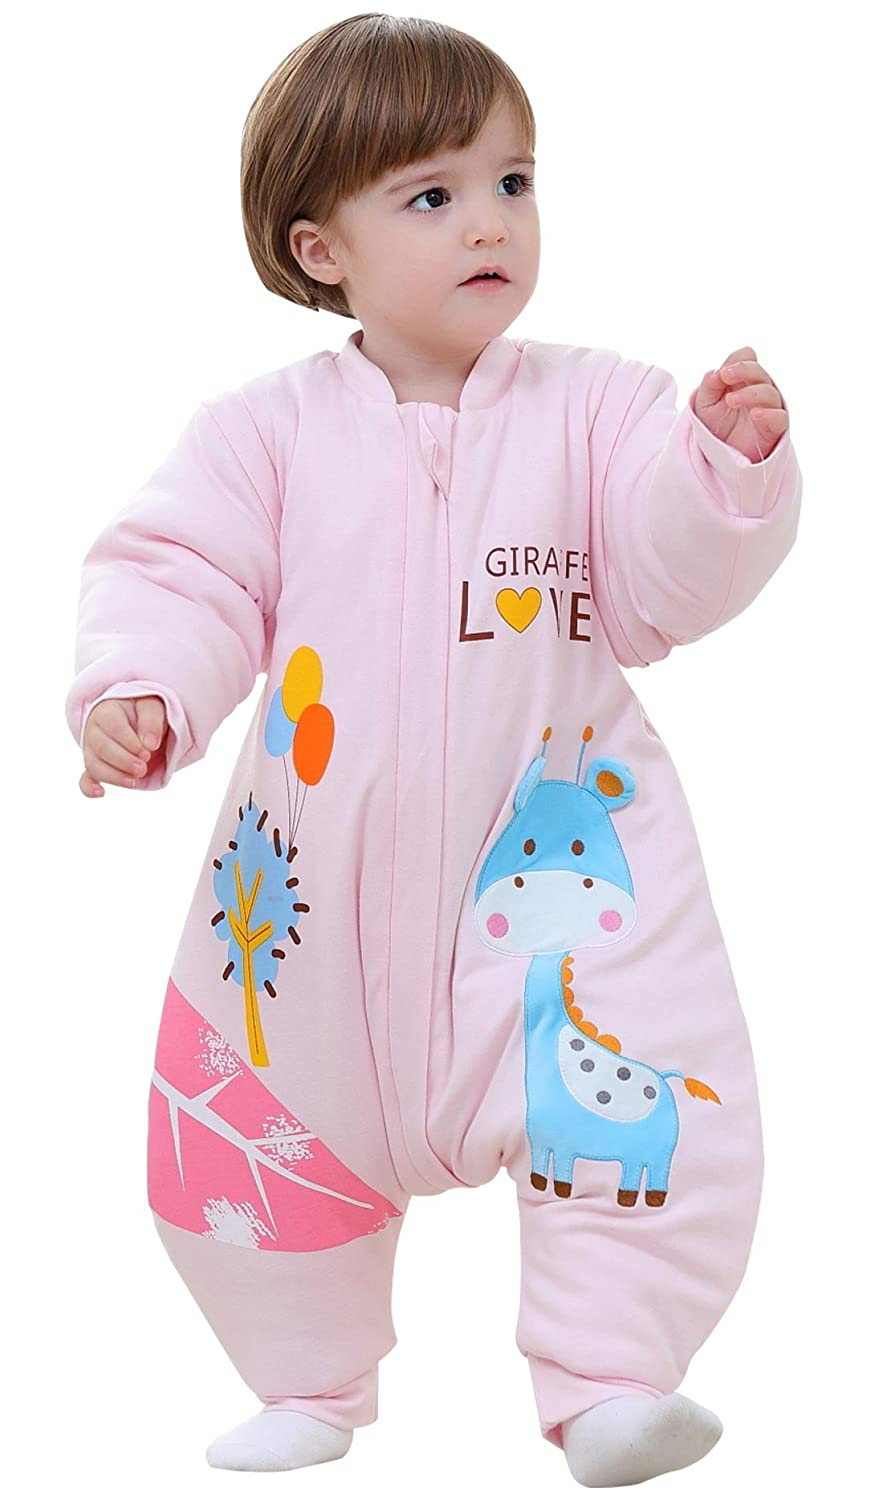 Baby Romper Infant 3.5 Tog 3D Deer Sleep Bag Thicken Wearable Cotton Blanket with Long Detachable Sleeves for Toddler 6-12 months Pink BEIFANCHEN